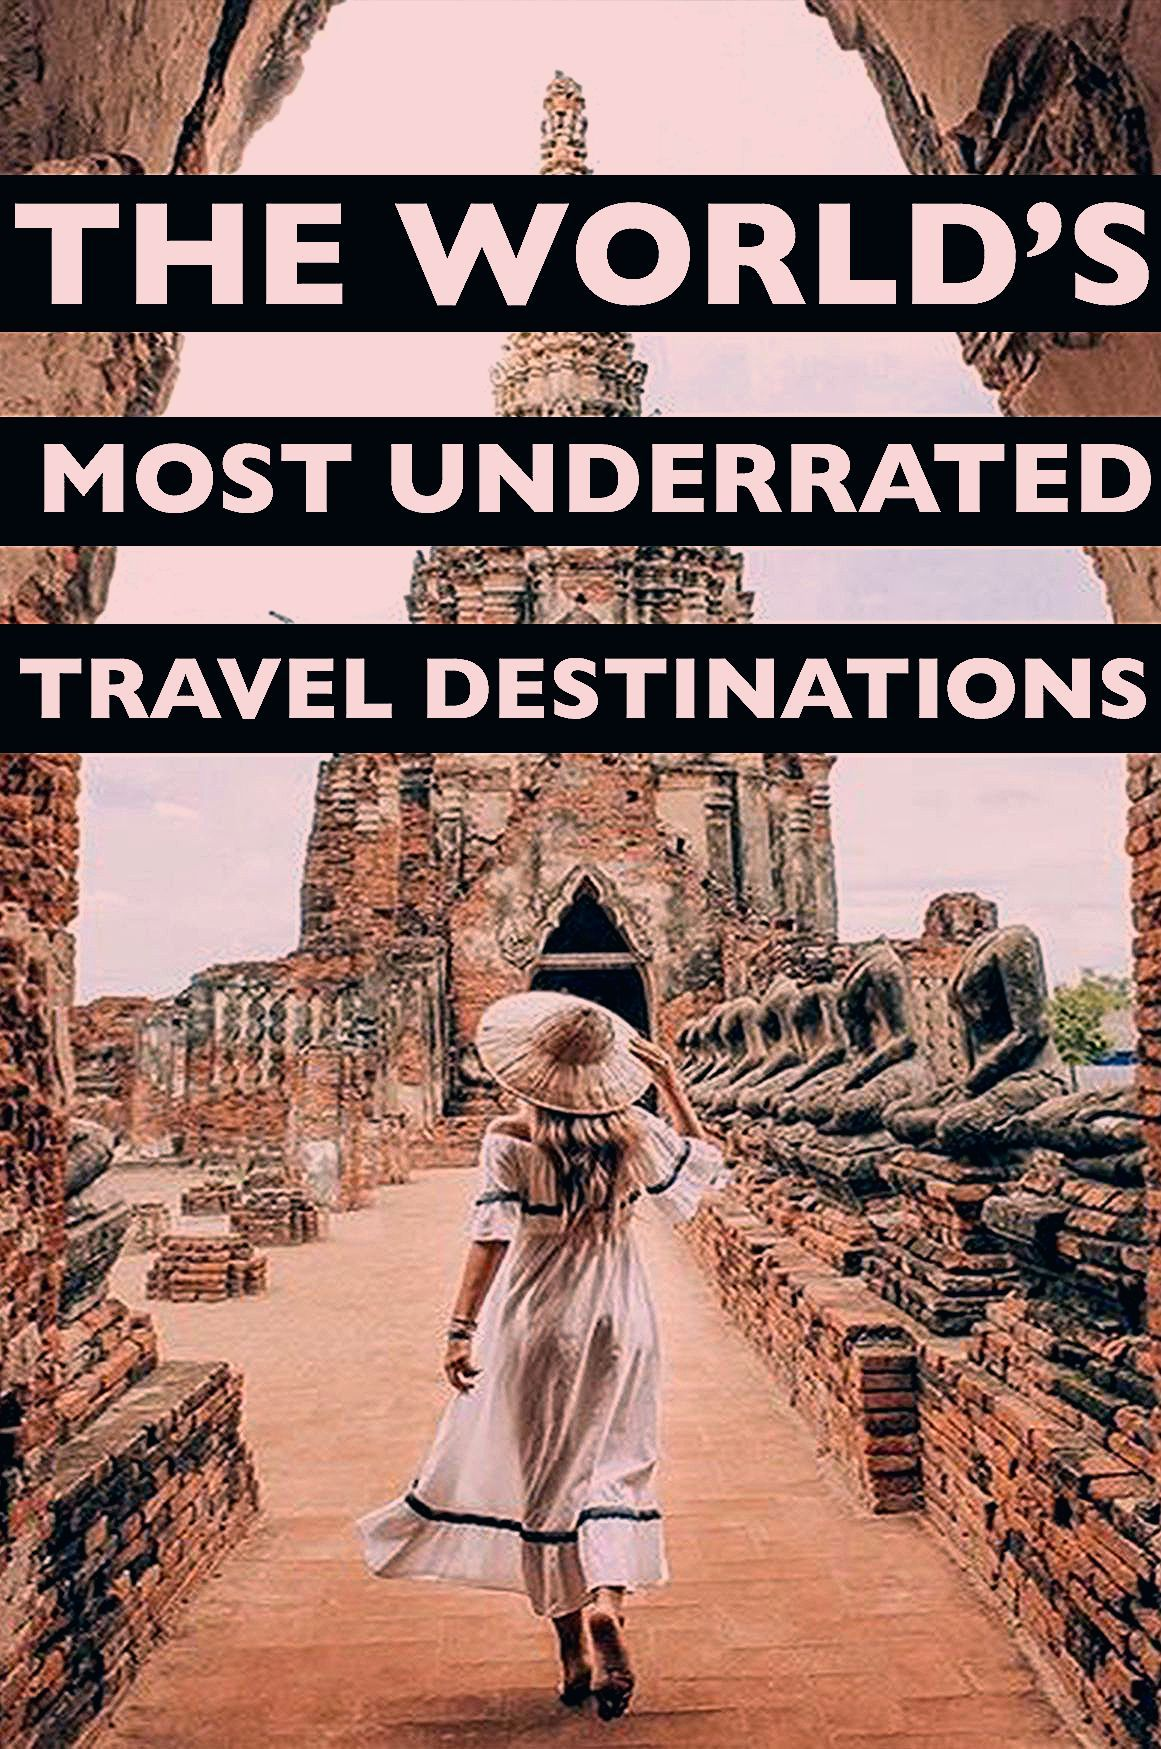 Photo of 11 of The World's Most Underrated Travel Destinations